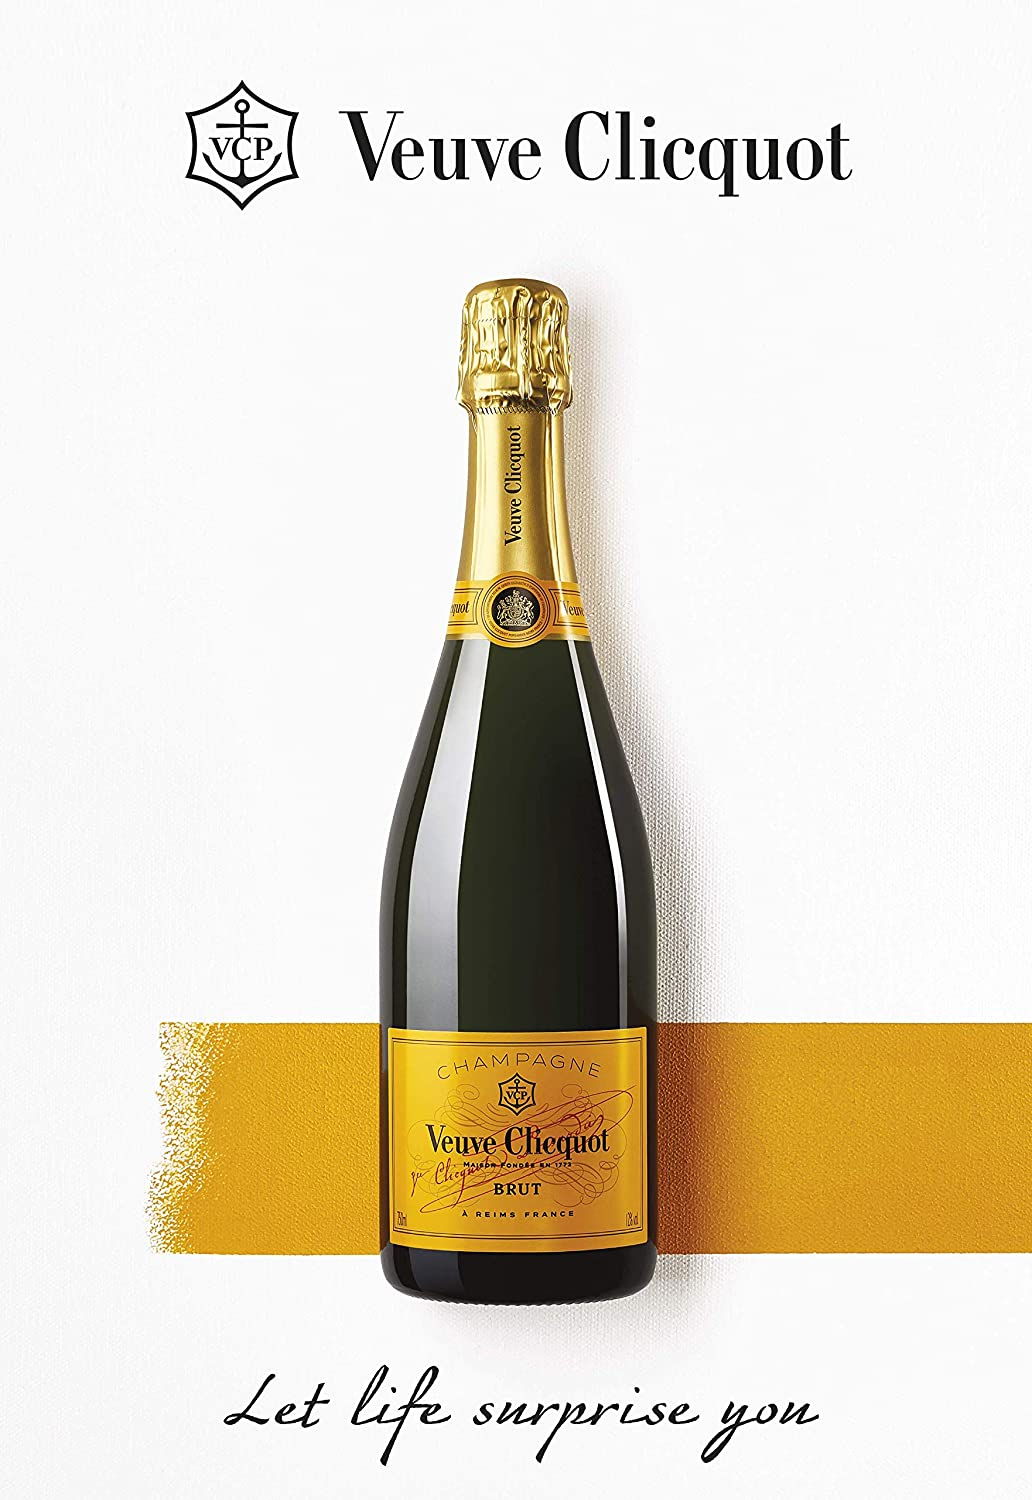 Baby champagne: description, composition, manufacturers and reviews 70